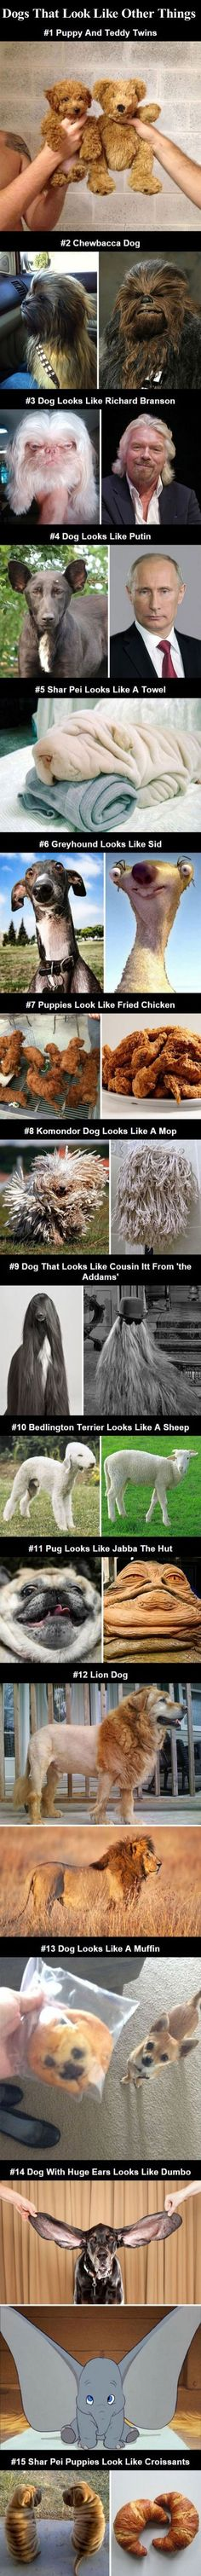 Animal humor dog - Dogs That Look Like Other Things cute animals dogs adorable dog puppy animal pets lol puppies humor funny pictures funny animals funny pets funny dogs Cute Funny Animals, Funny Animal Pictures, Funny Cute, Funny Dogs, Funny Humor, Super Funny, Pet Humor, Hilarious Sayings, Funny Puppies